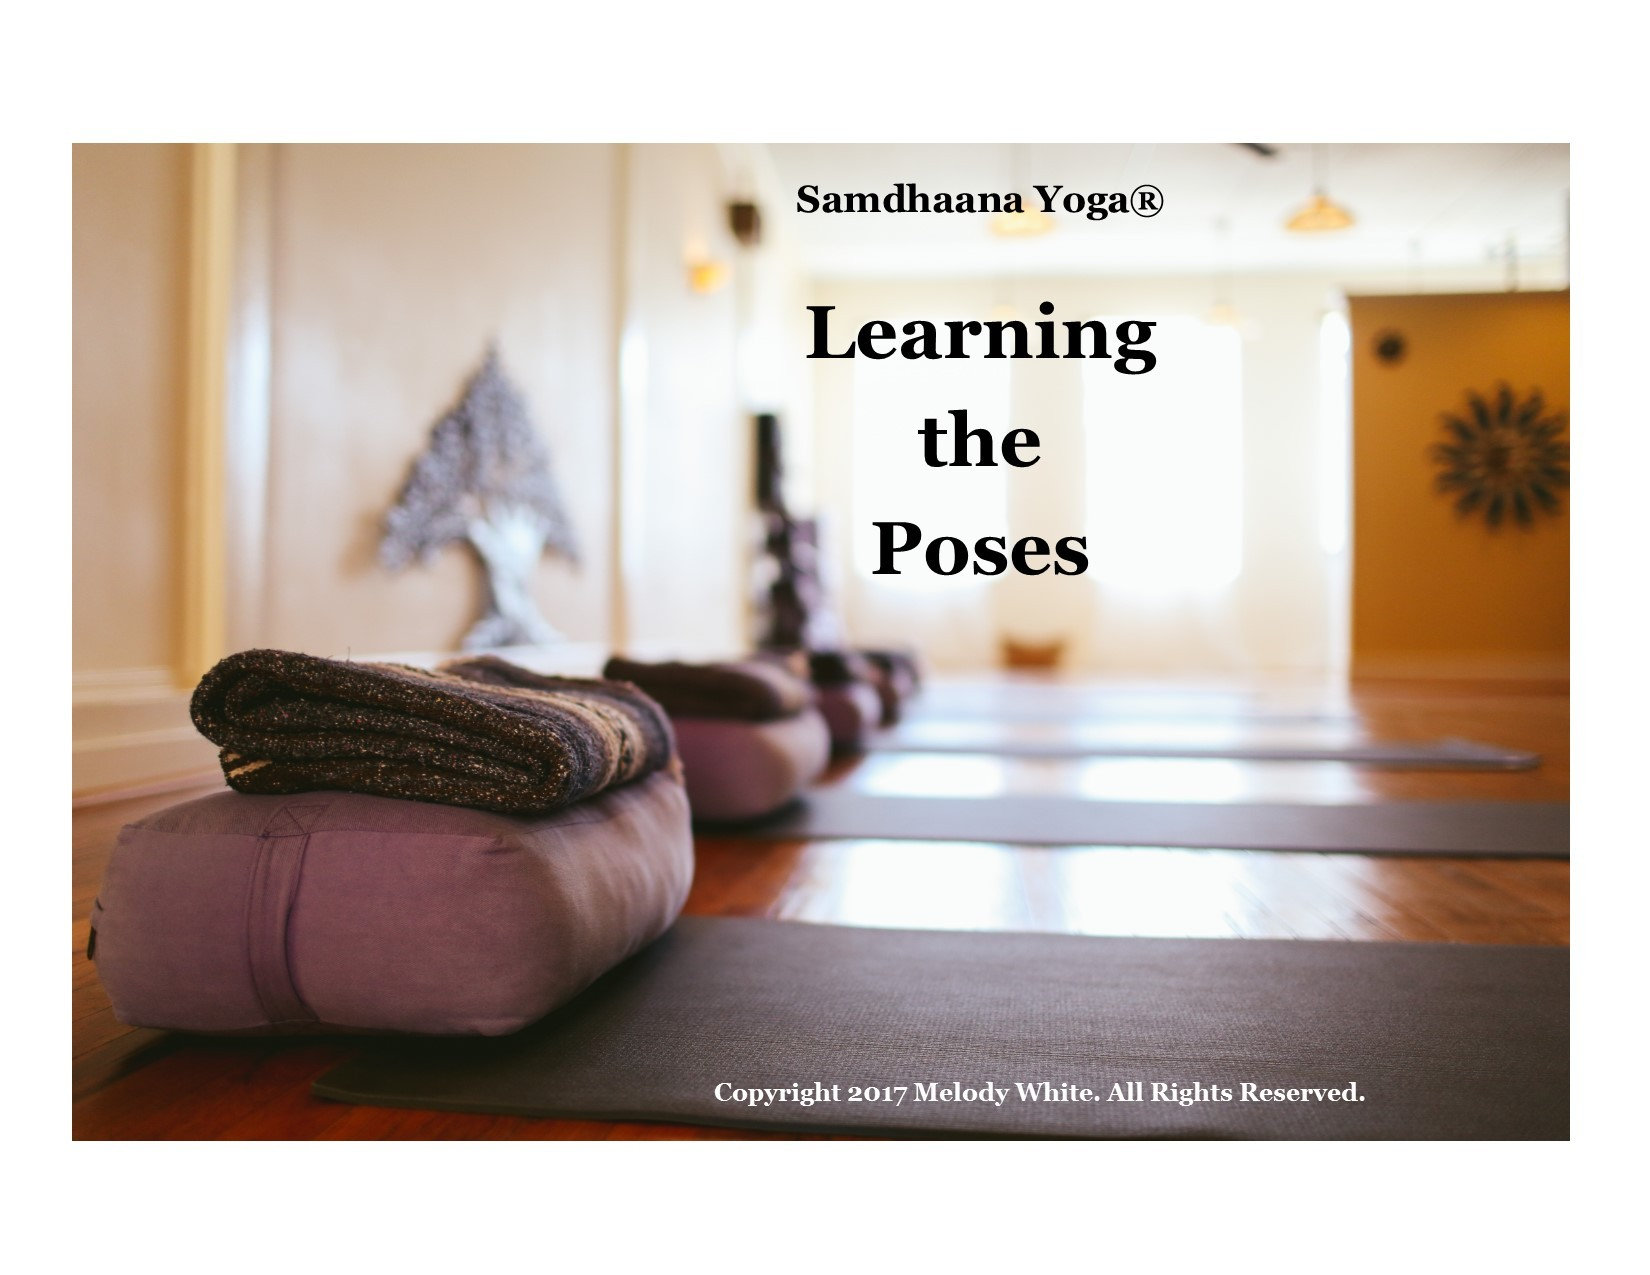 samdhaana yoga learn the poses